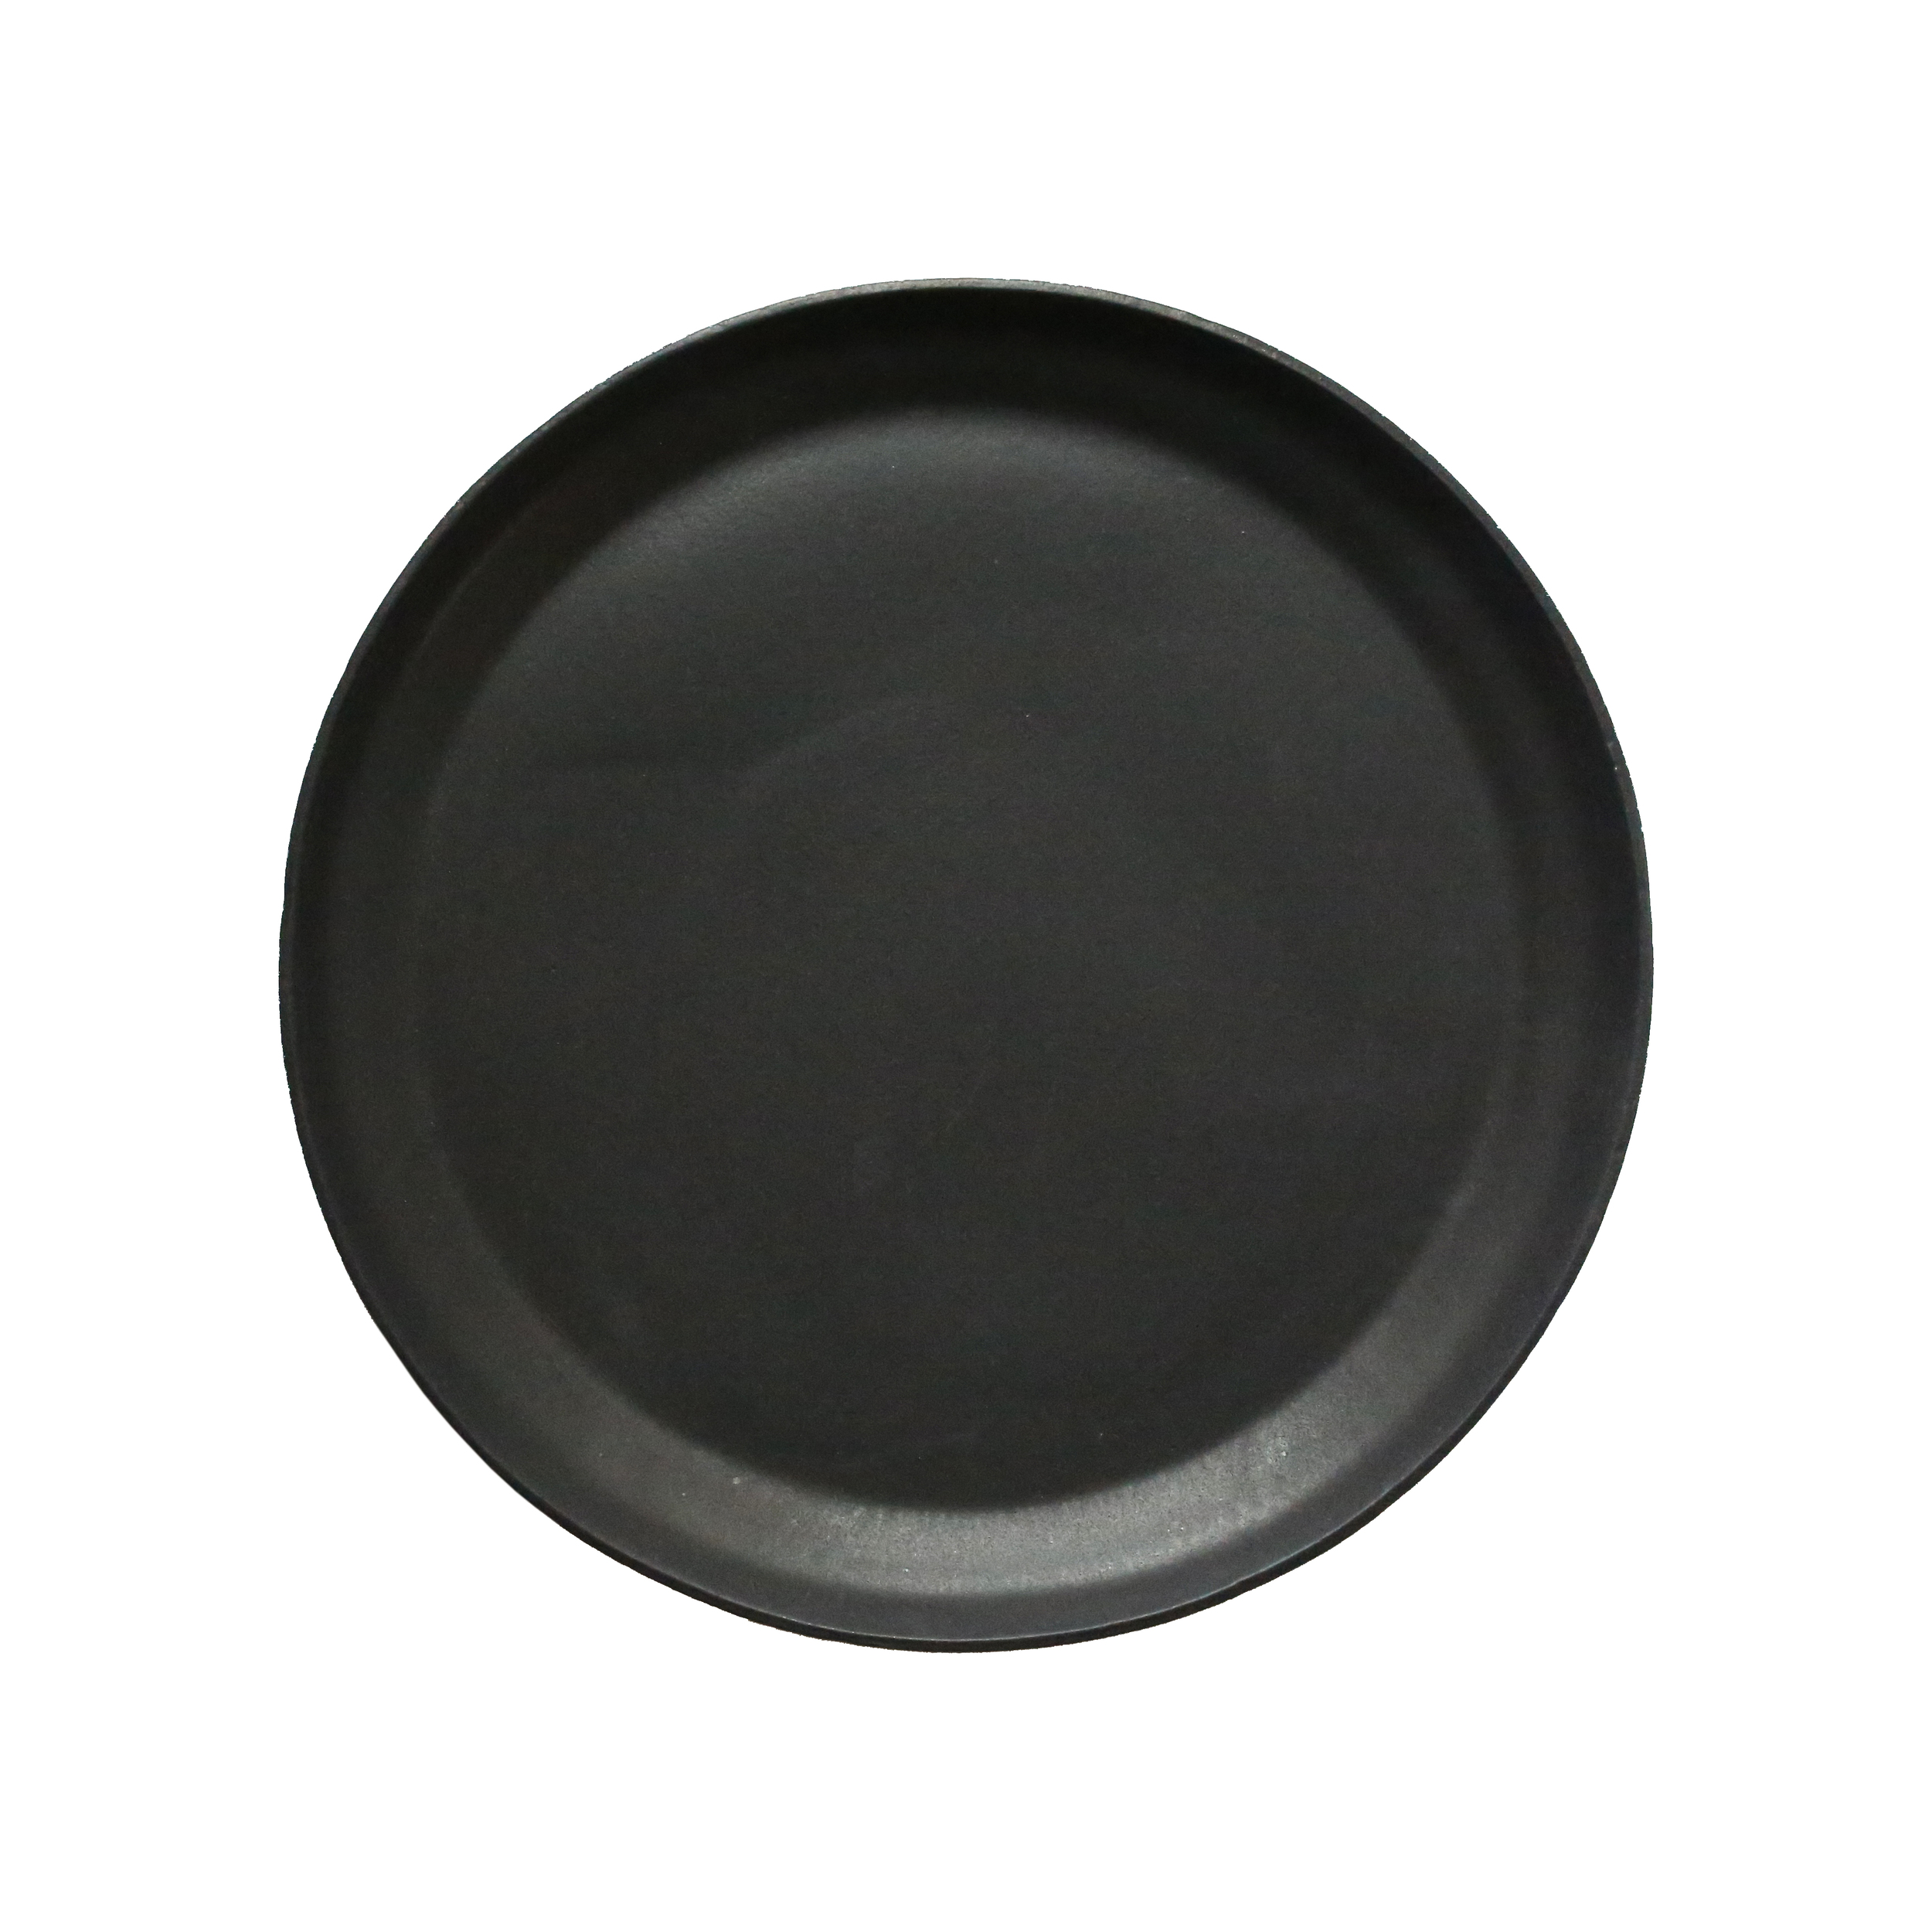 Serving Plate, Oil Black